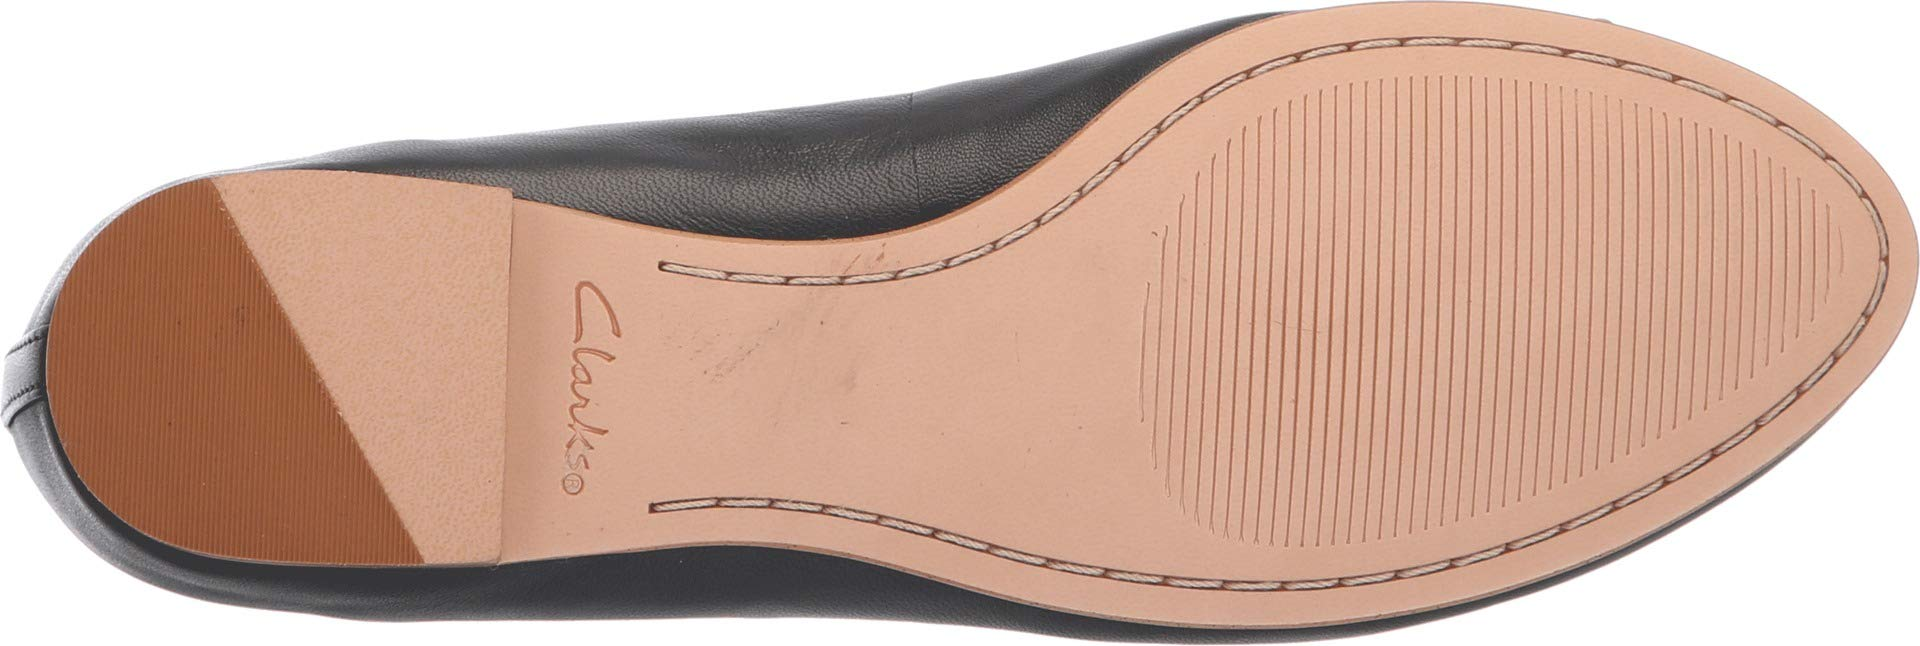 CLARKS Womens Grace Lily Ballet Flat, Black Leather, Size 7.5 by CLARKS (Image #3)